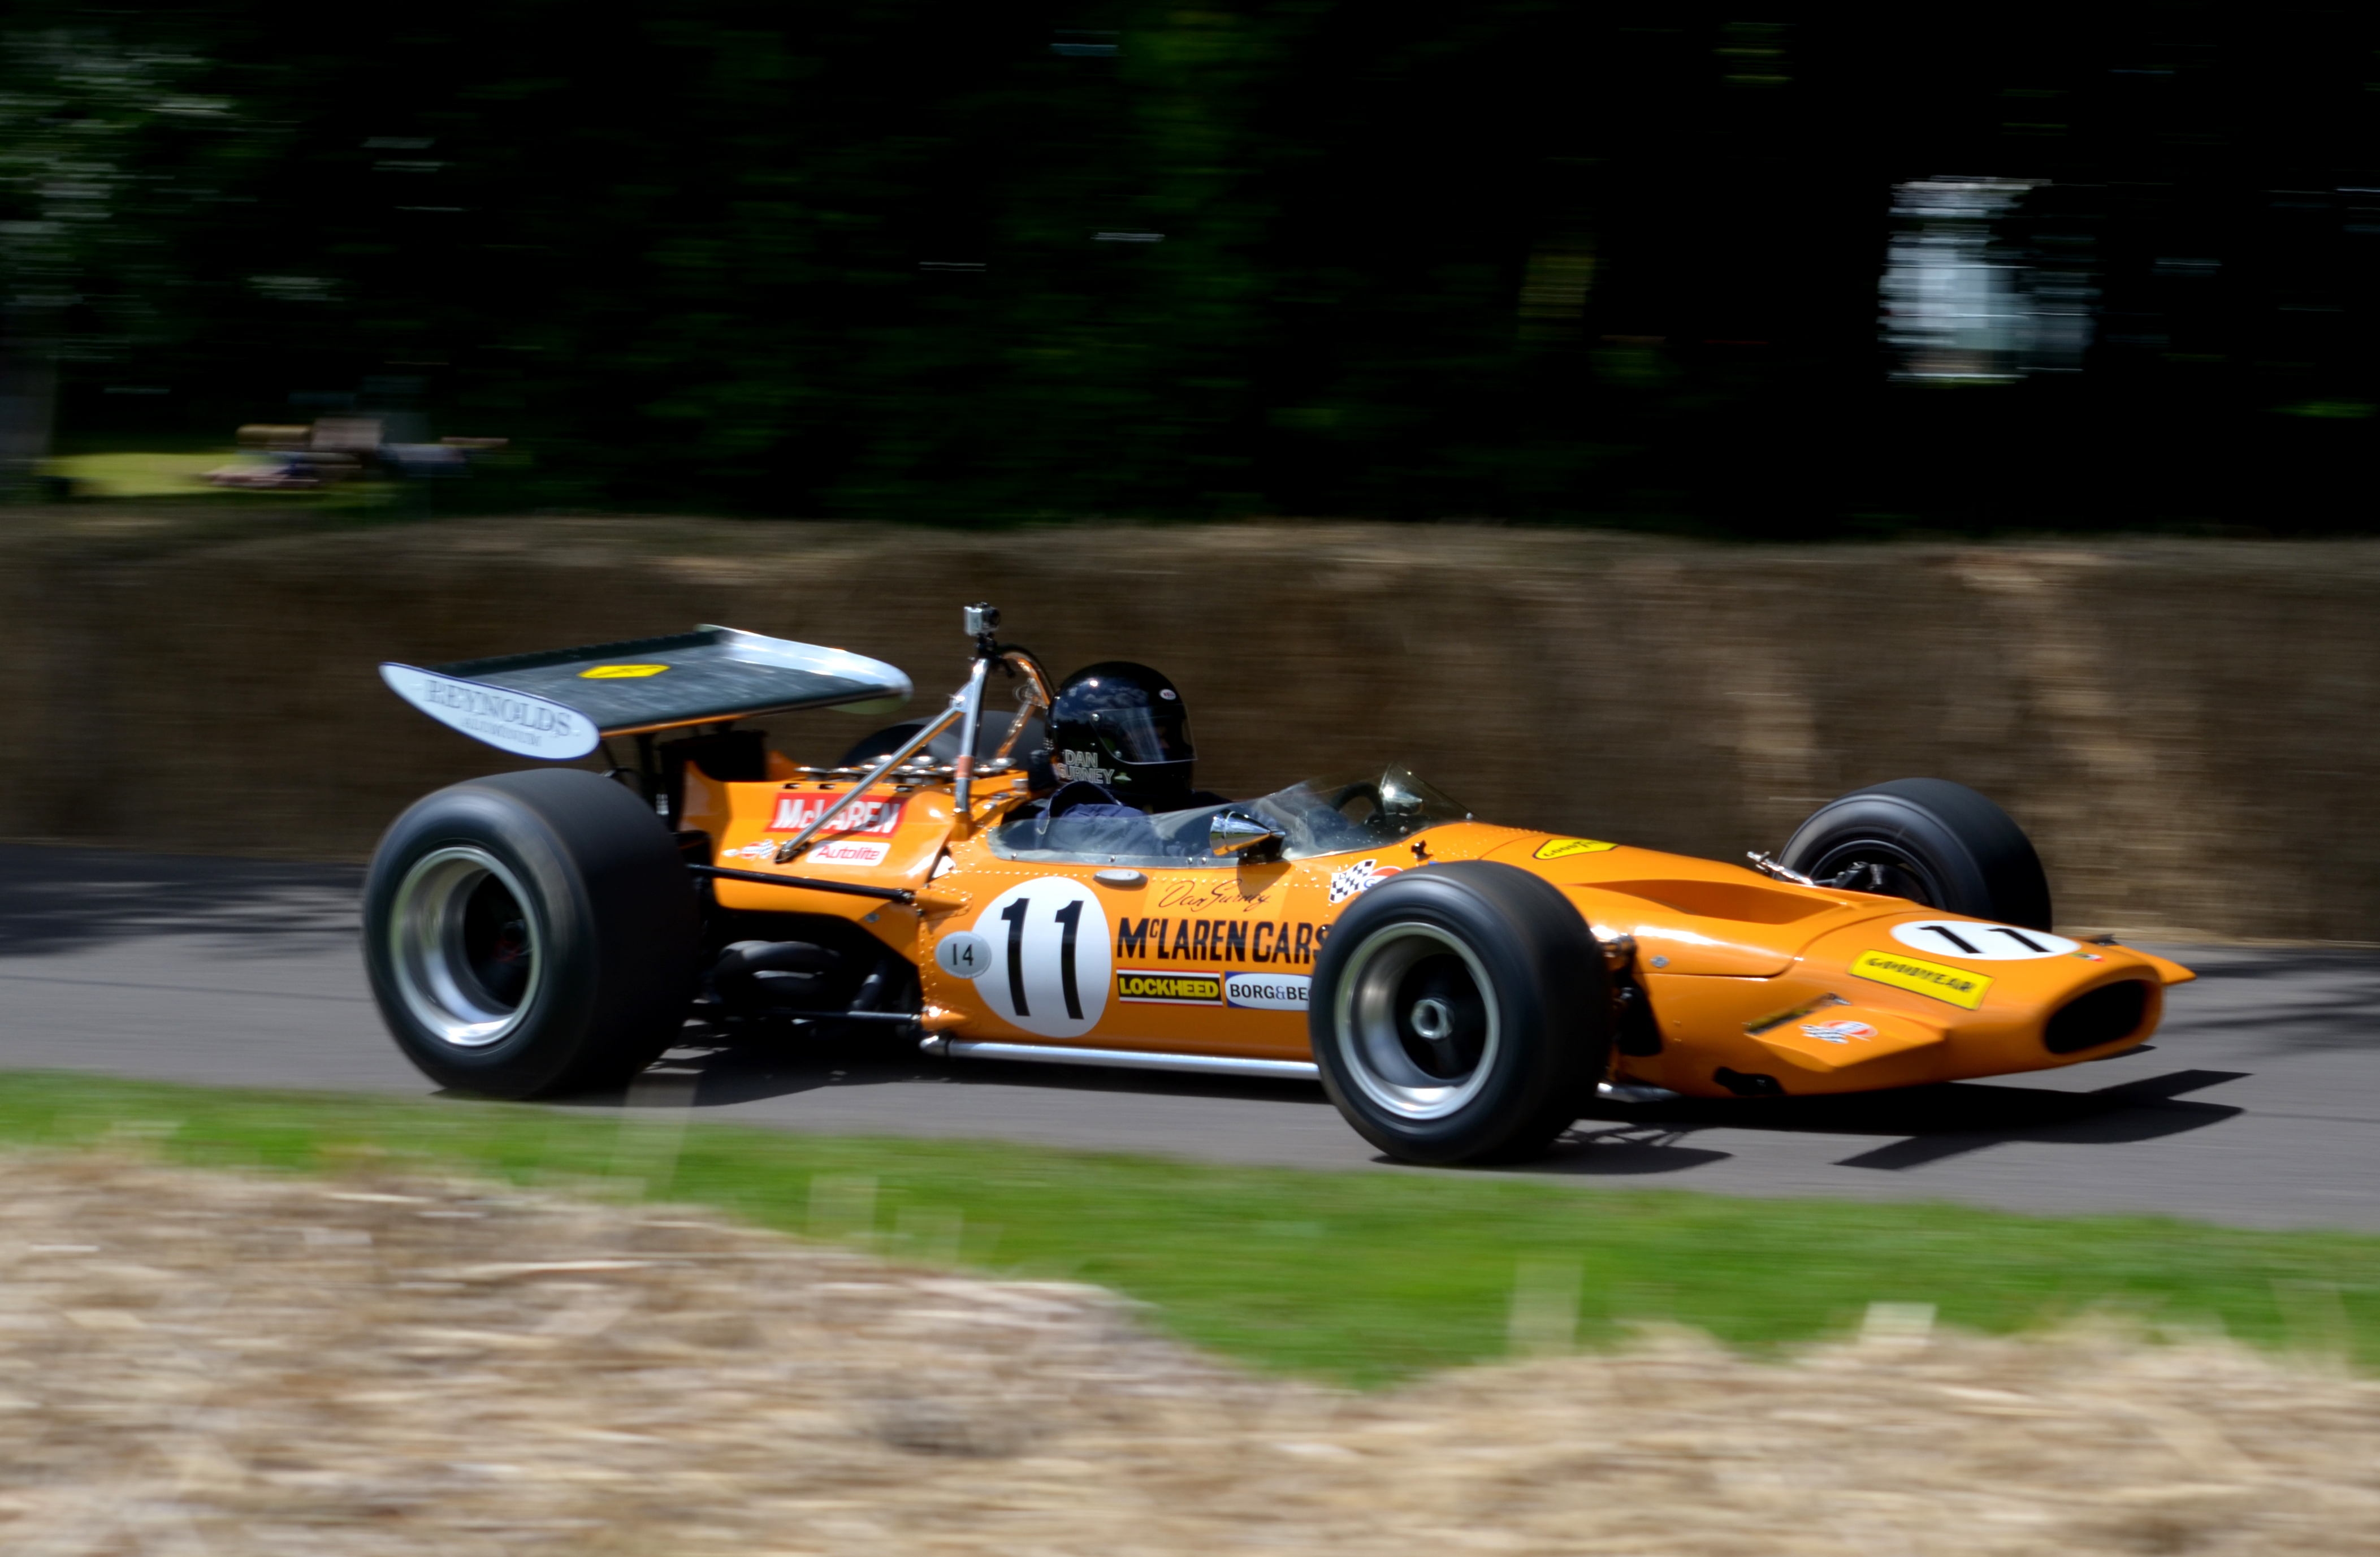 F1 Car Pictures Wallpaper File Mclaren M14a At Goodwood 2012 2 Jpg Wikimedia Commons